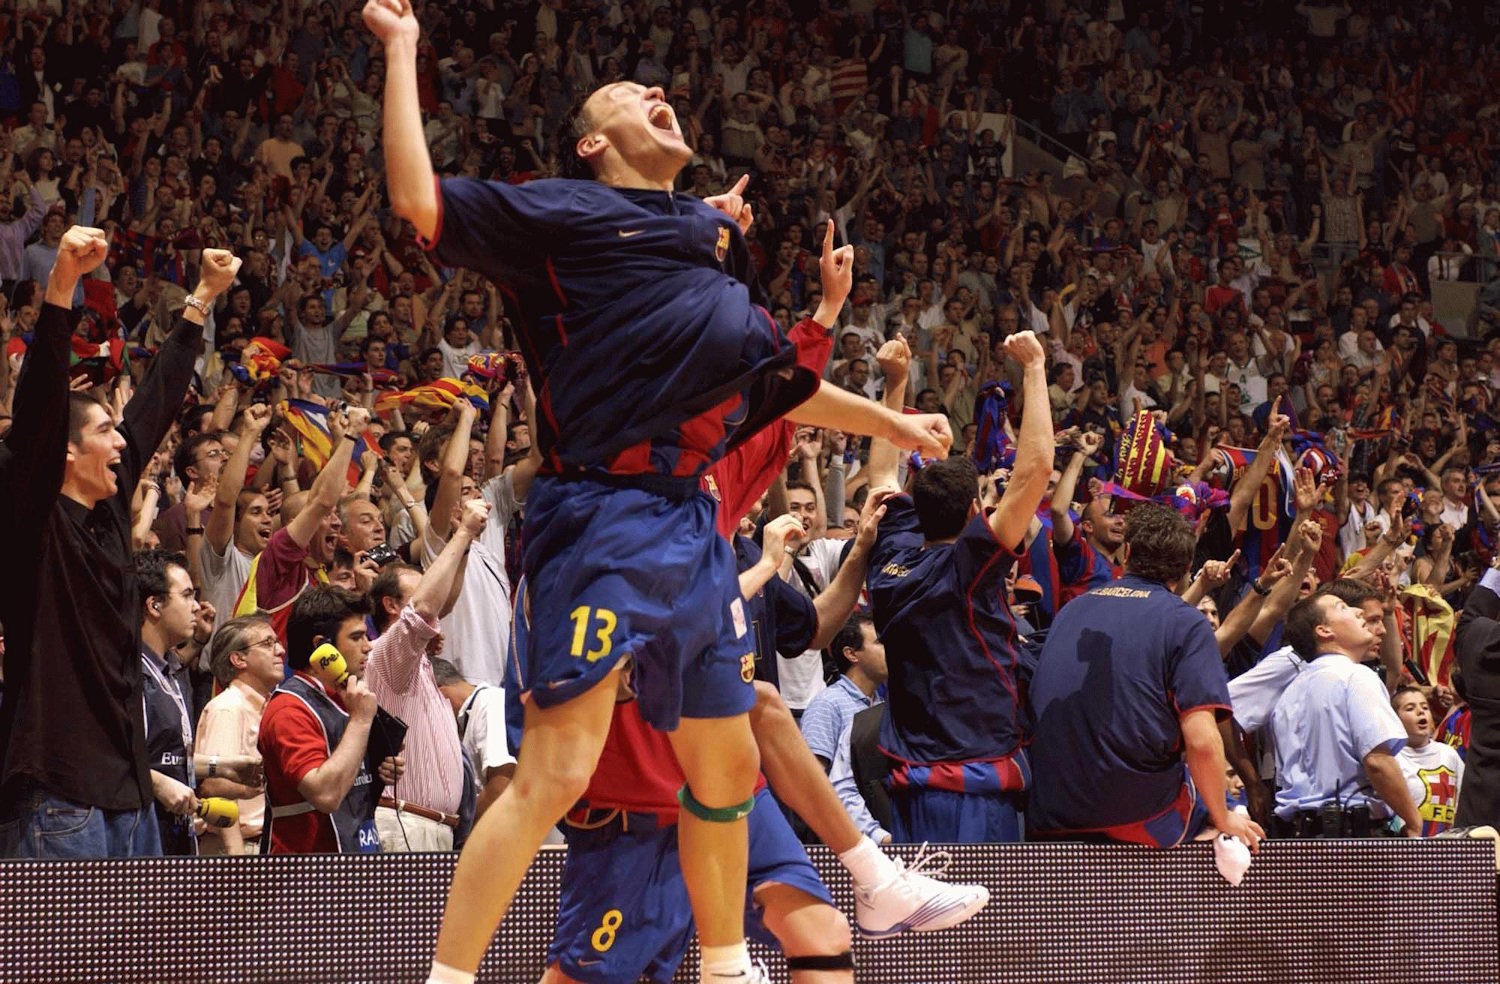 Sarunas Jasikevicius - FC Barcelona, champ Final Four 2003 - EB02